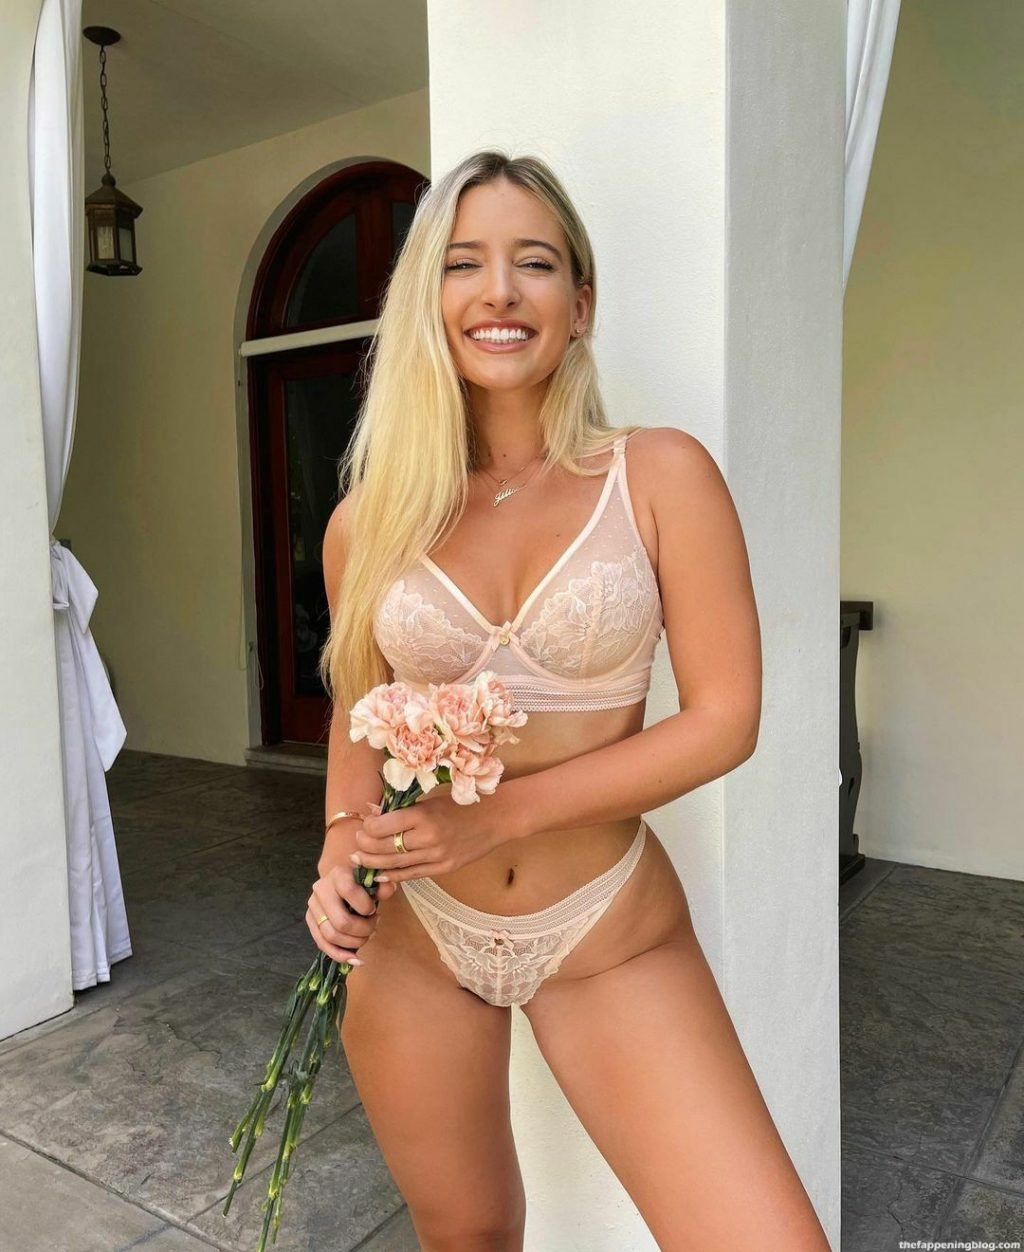 Jilissa Ann Zoltko Looks Hot in a Bra and Panties with Flowers (8 Photos)